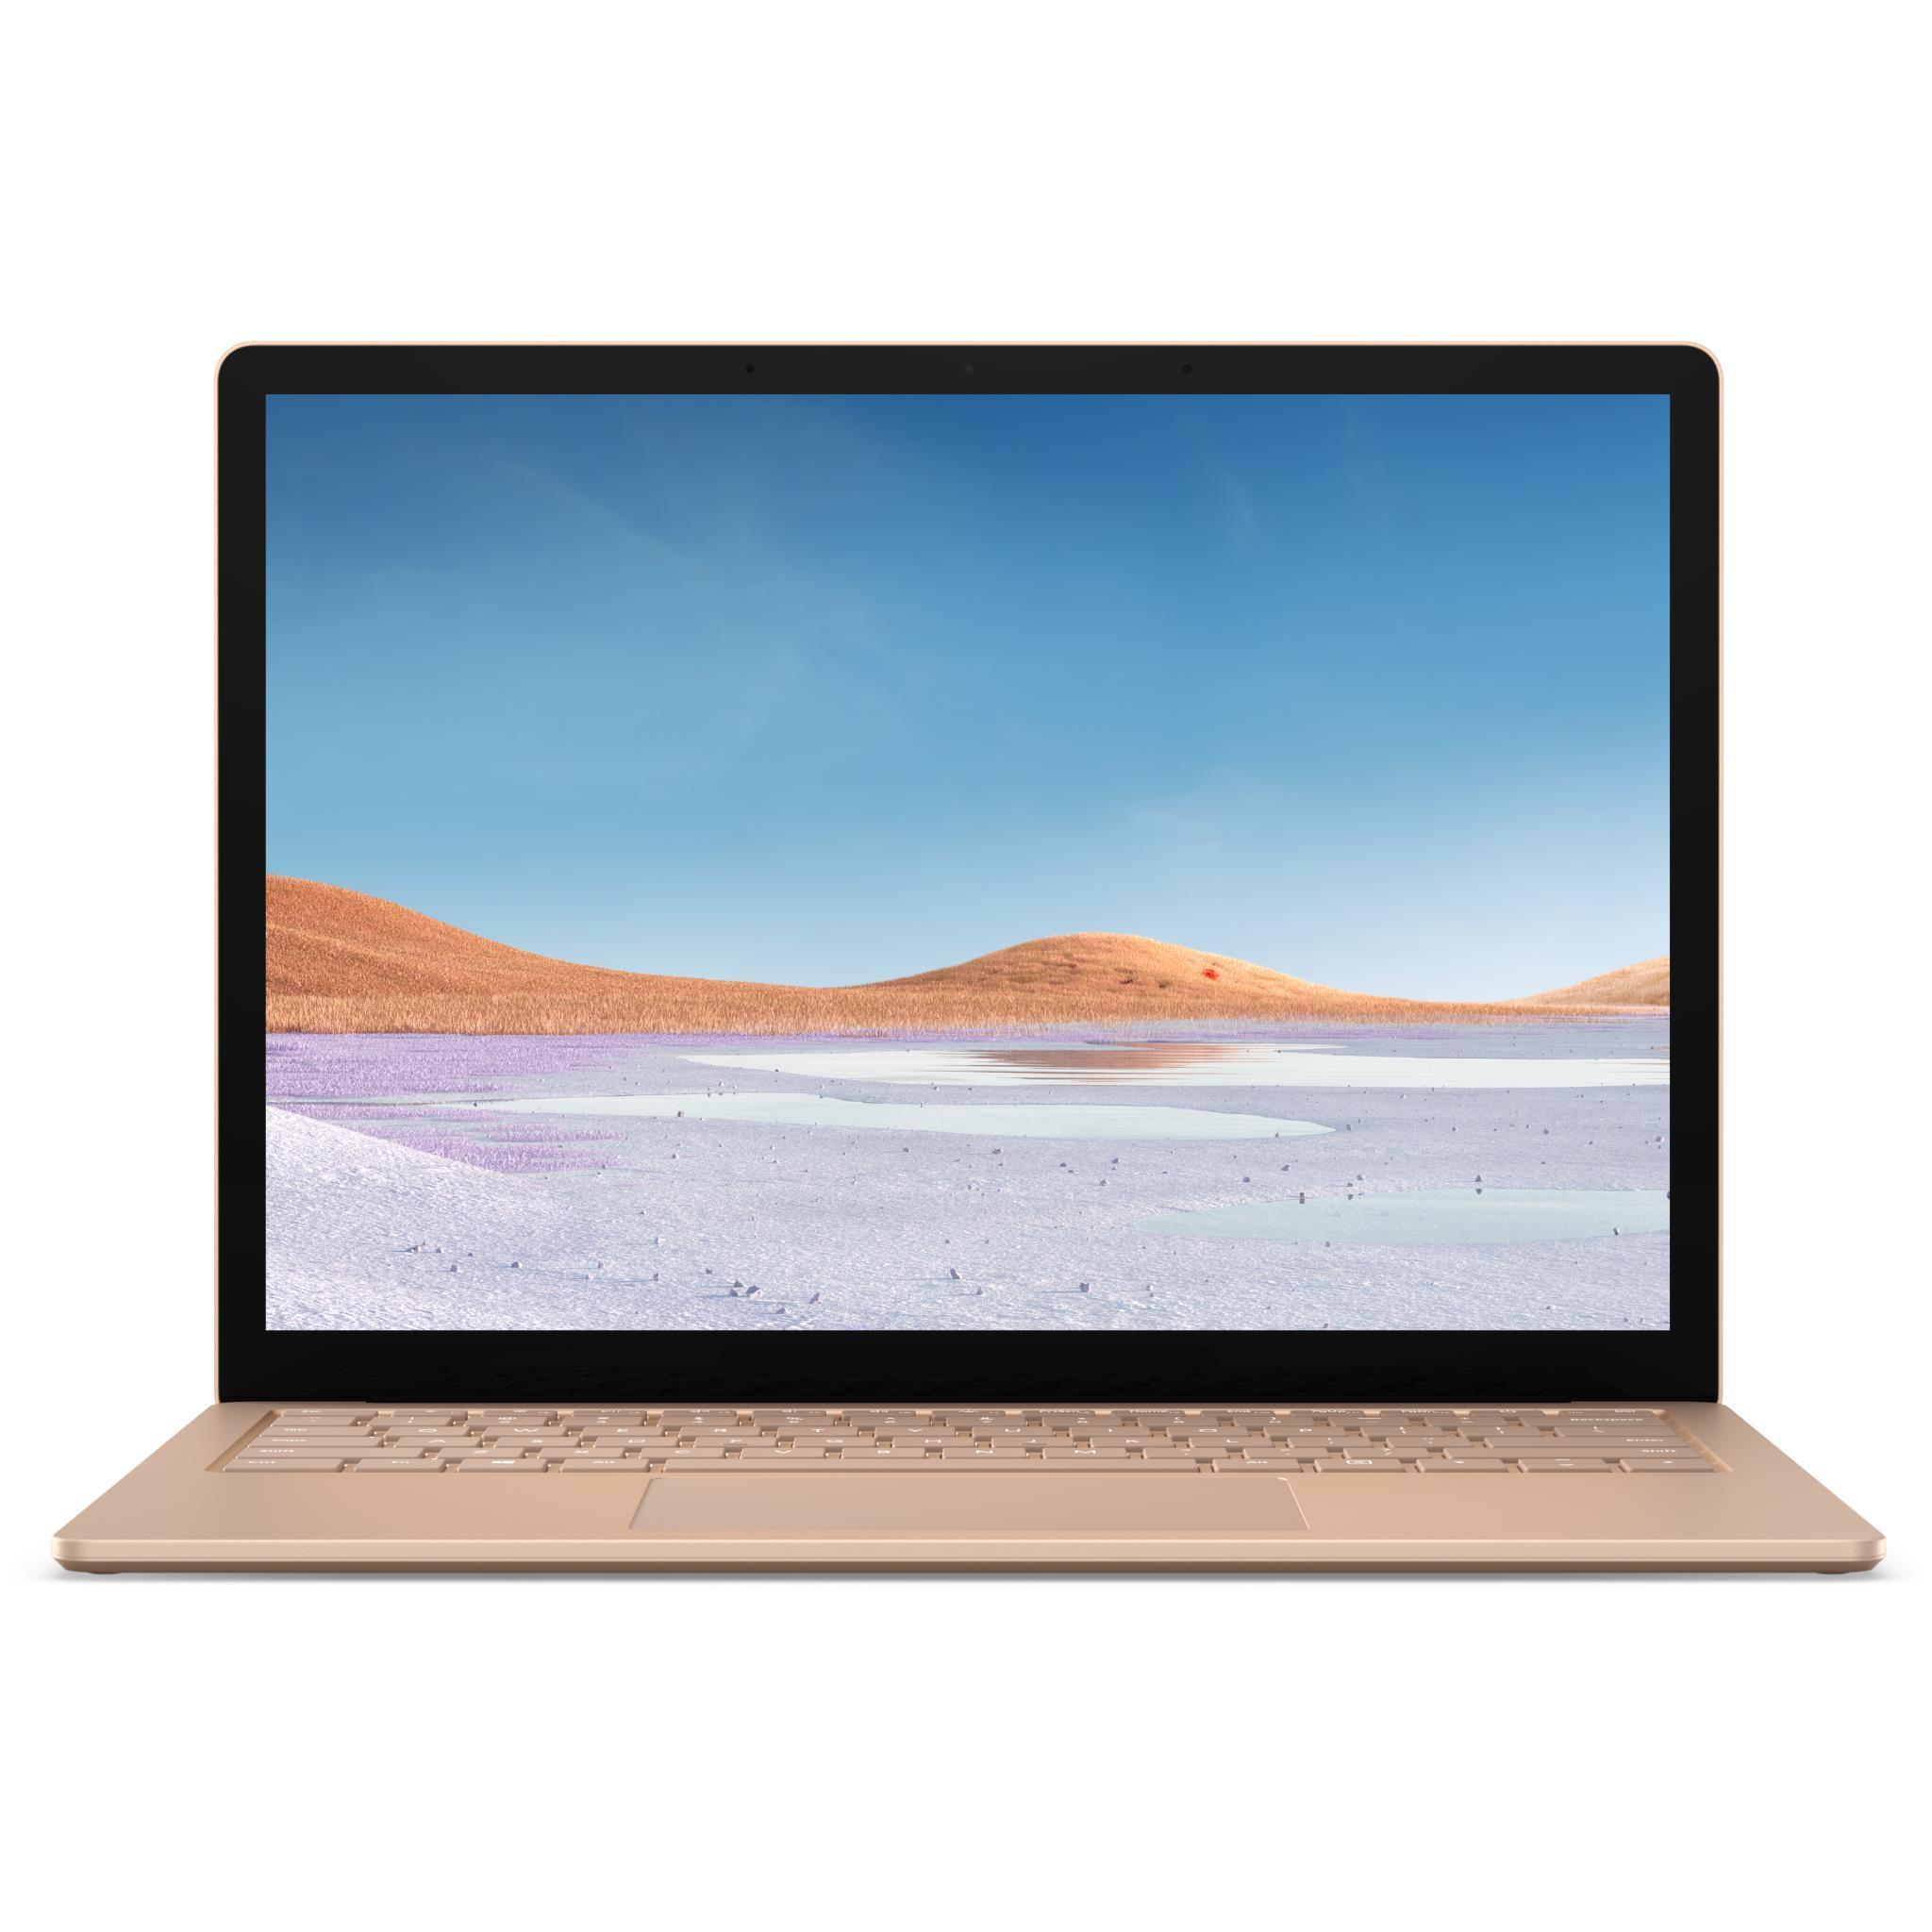 Microsoft Surface Laptop 3 13.5″ i5 256GB (Sandstone)